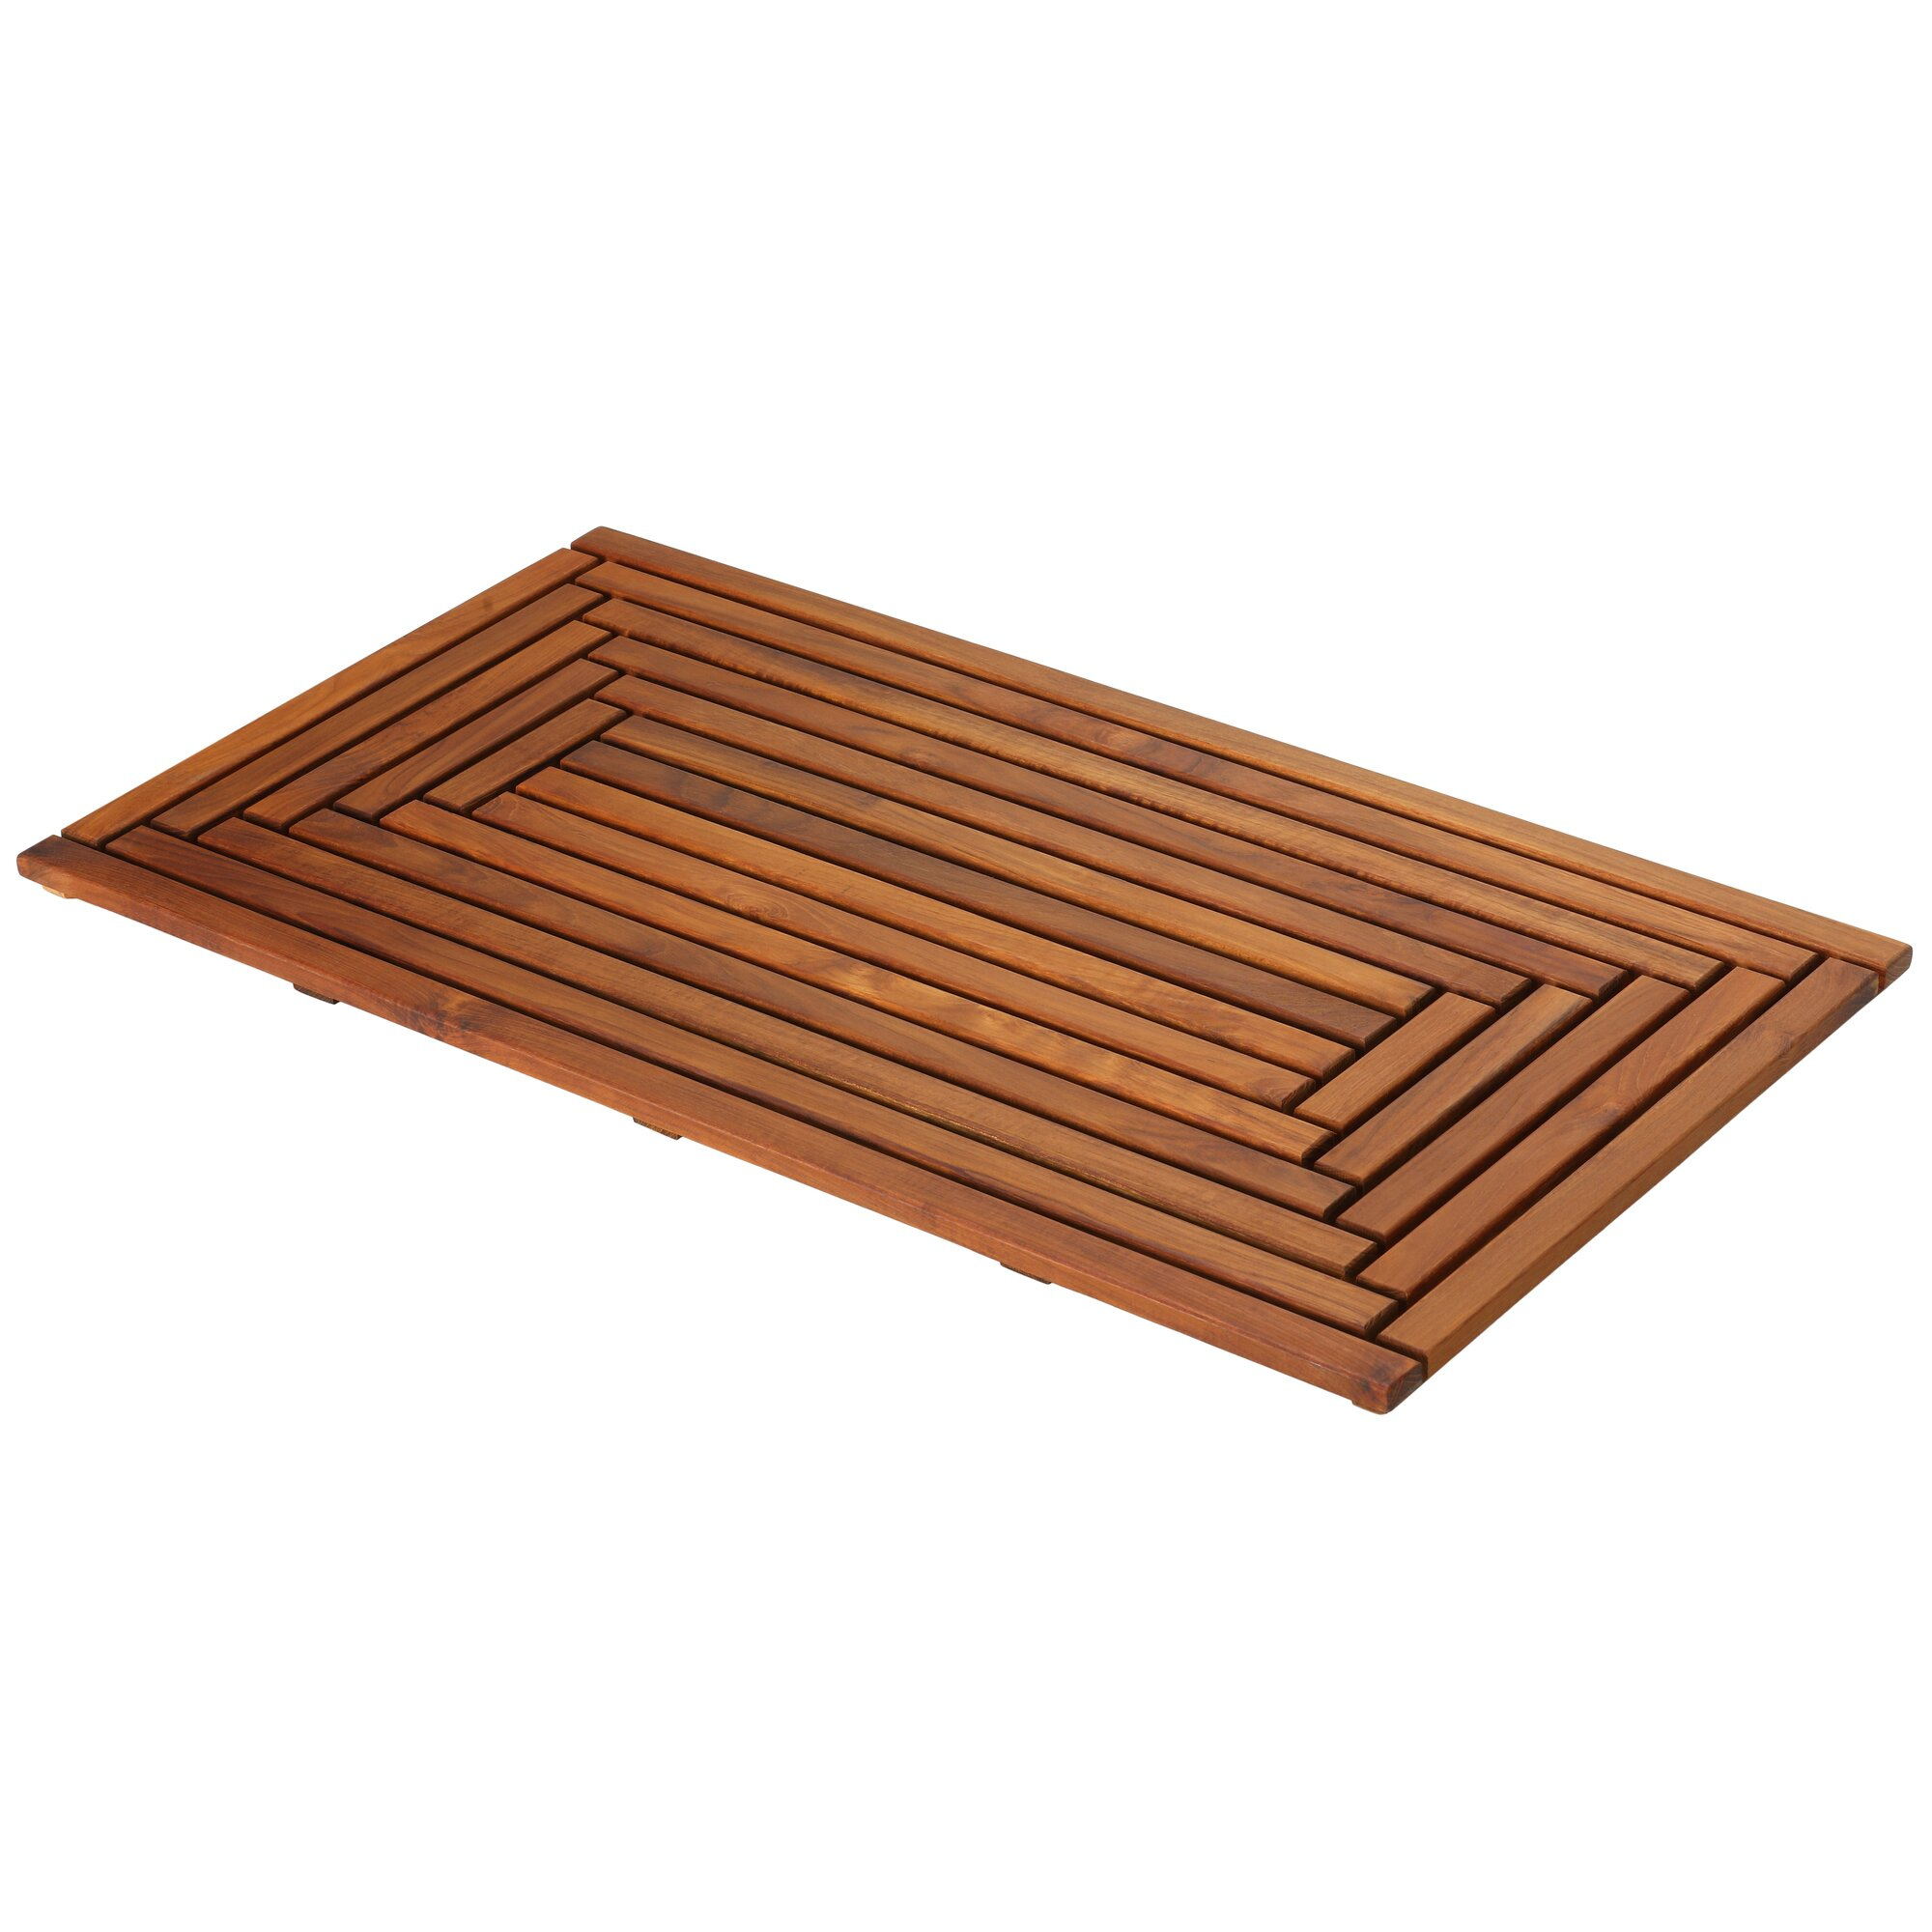 Baredecor Solid Teak Wood Shower Mat Amp Reviews Wayfair